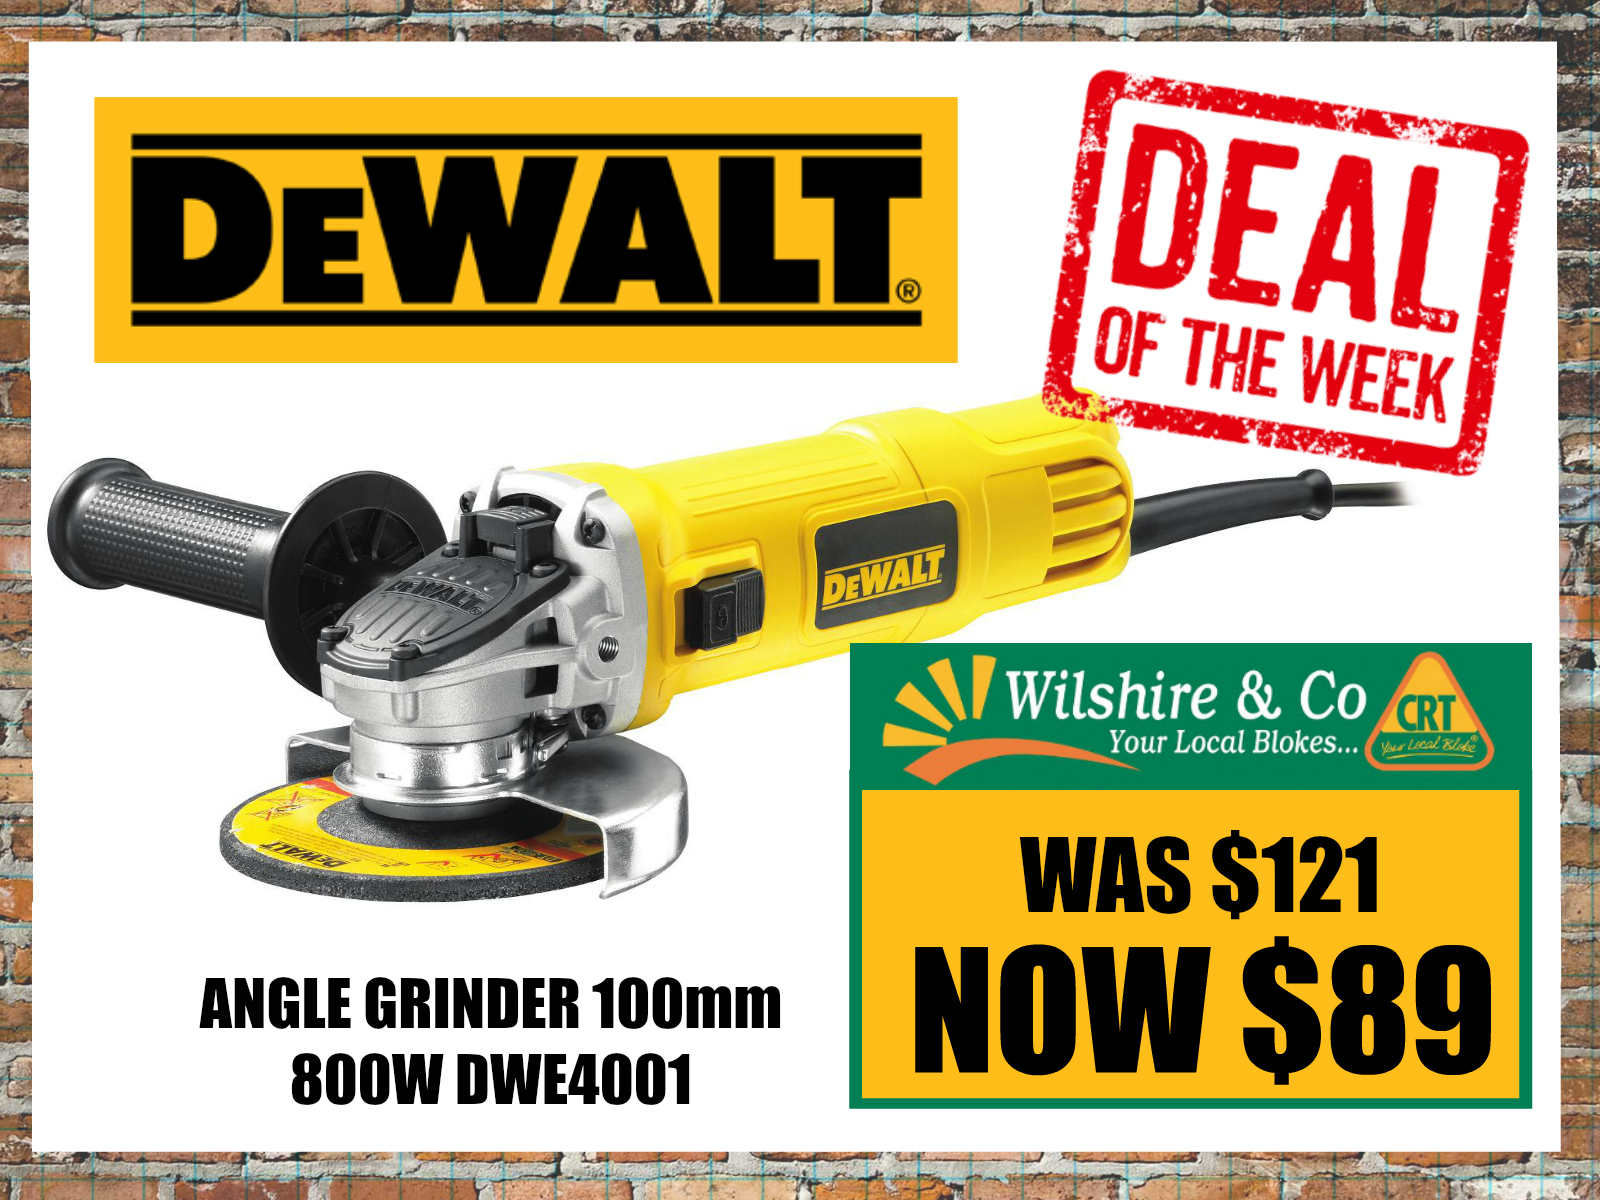 dewalt-deal-of-the-week-06.02.jpg